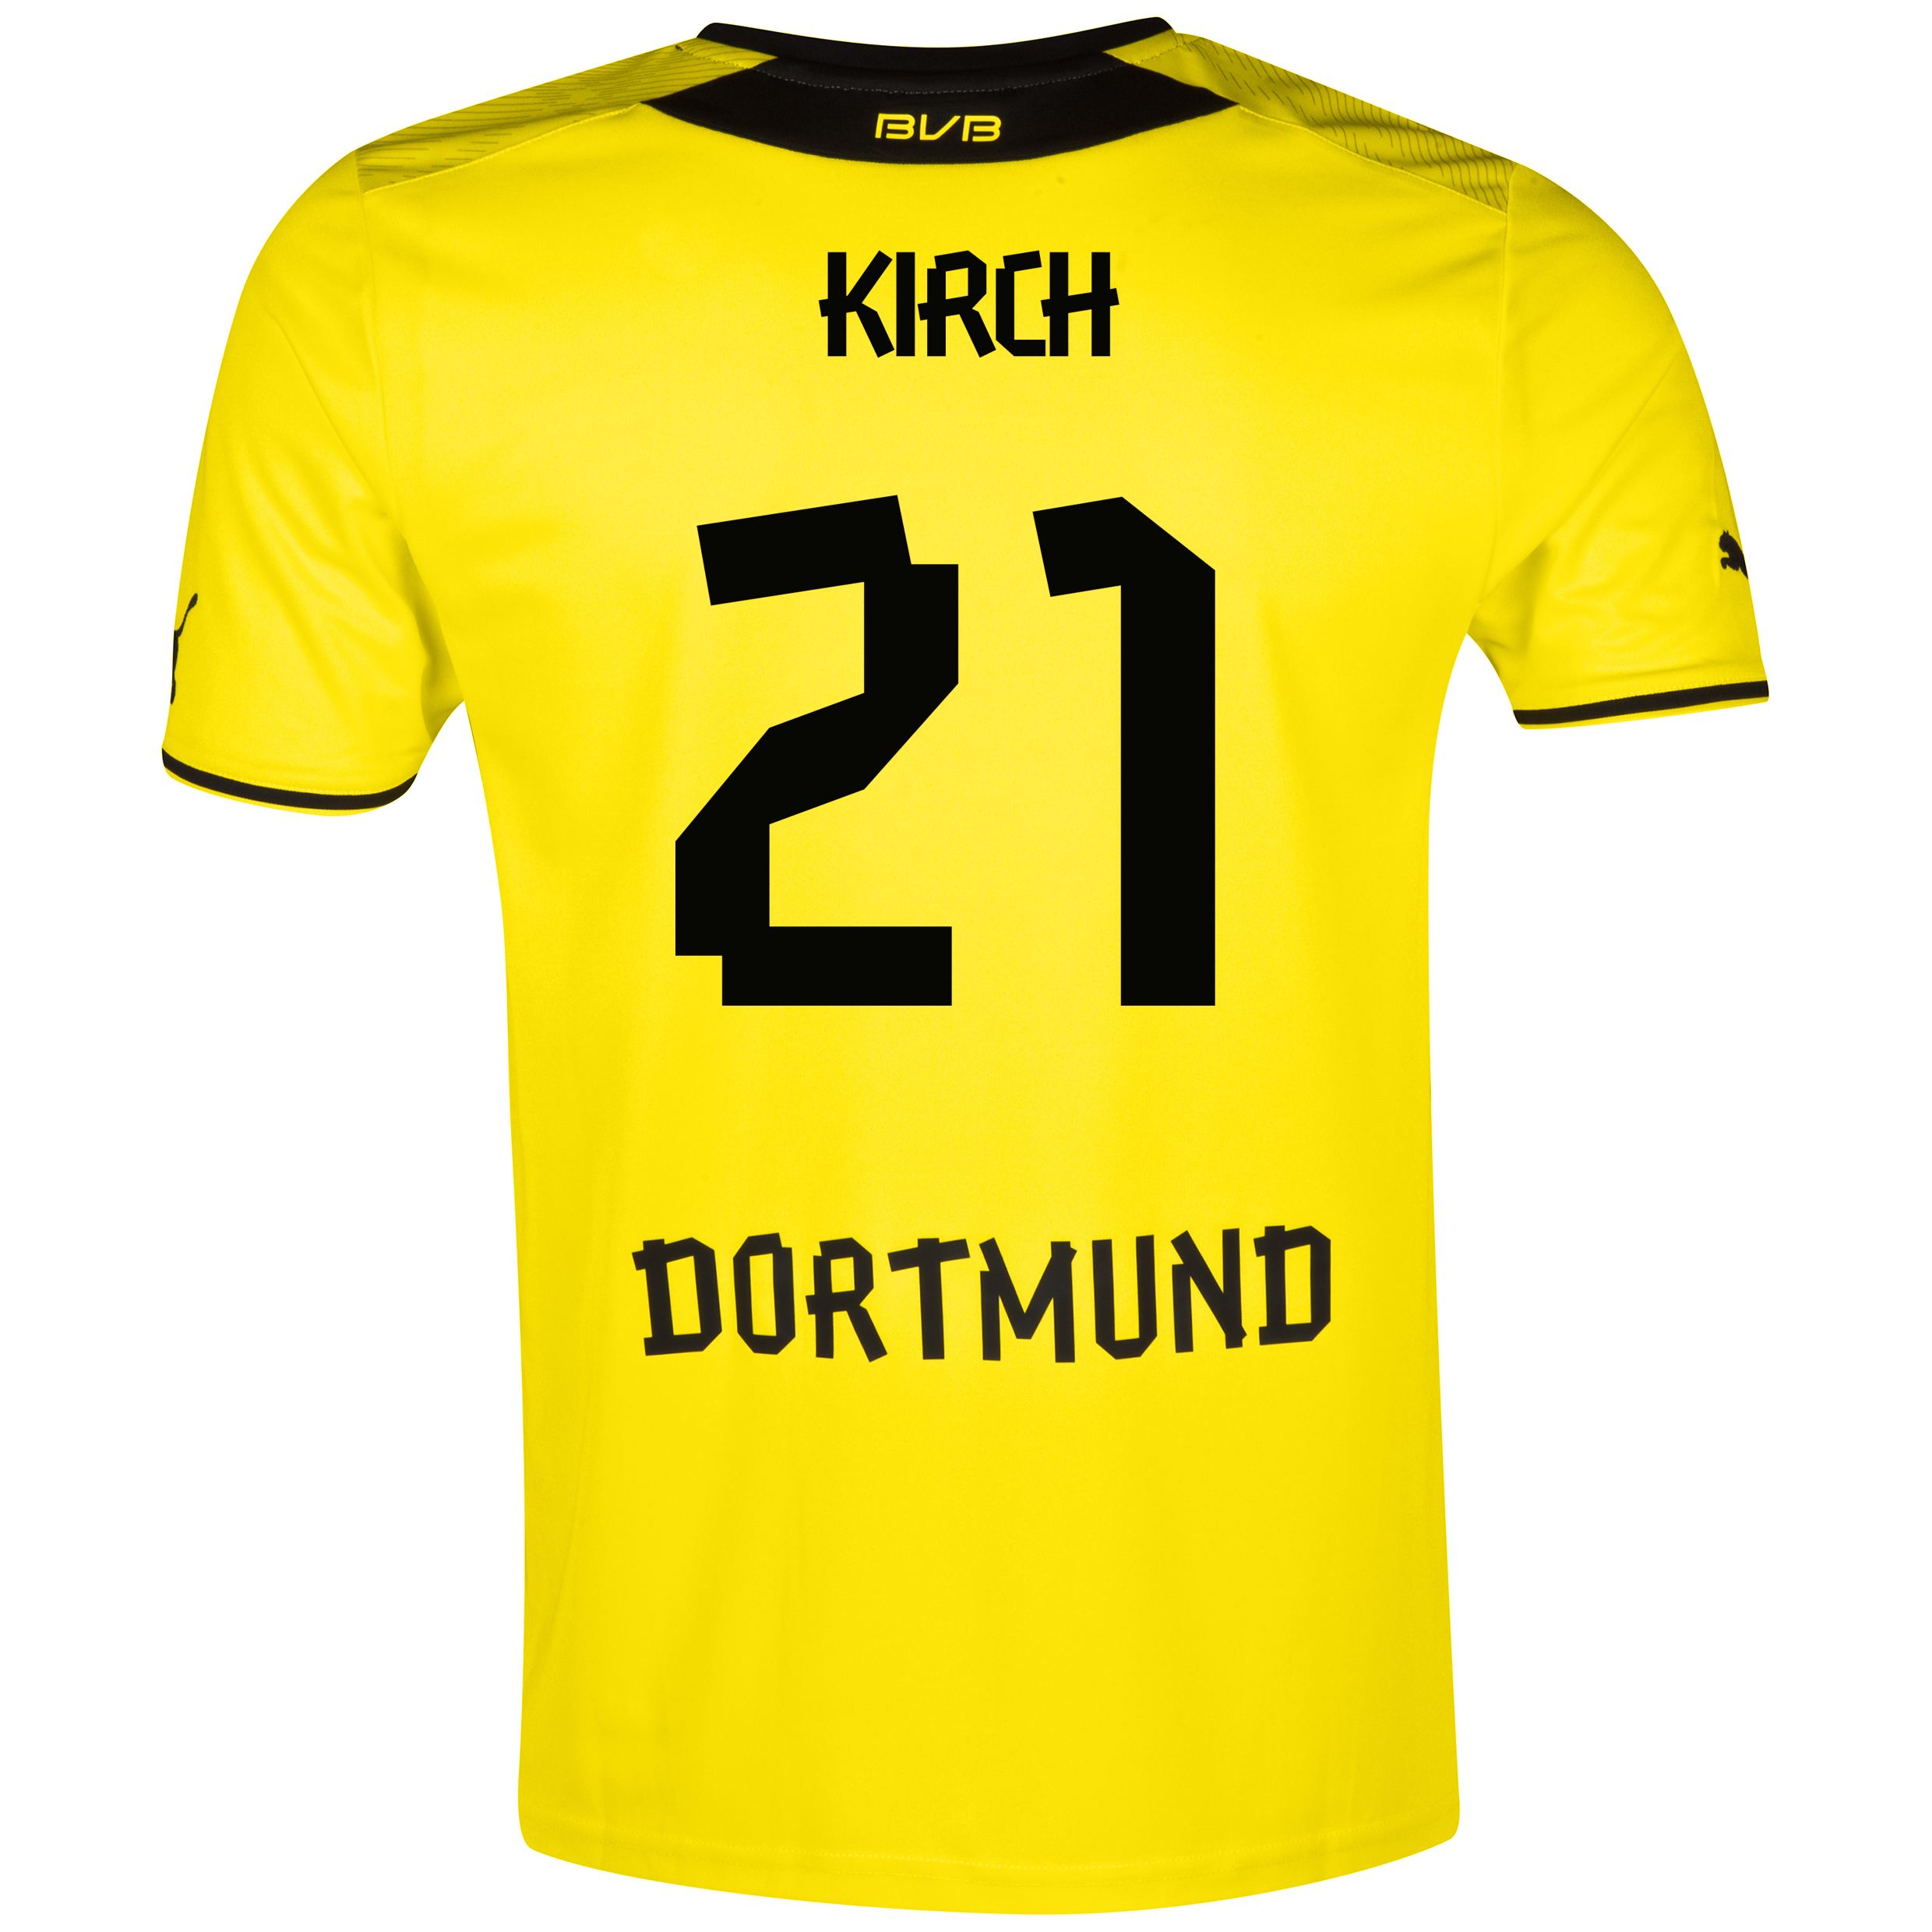 BVB Home Shirt 2013/14 with Kirch 21 printing